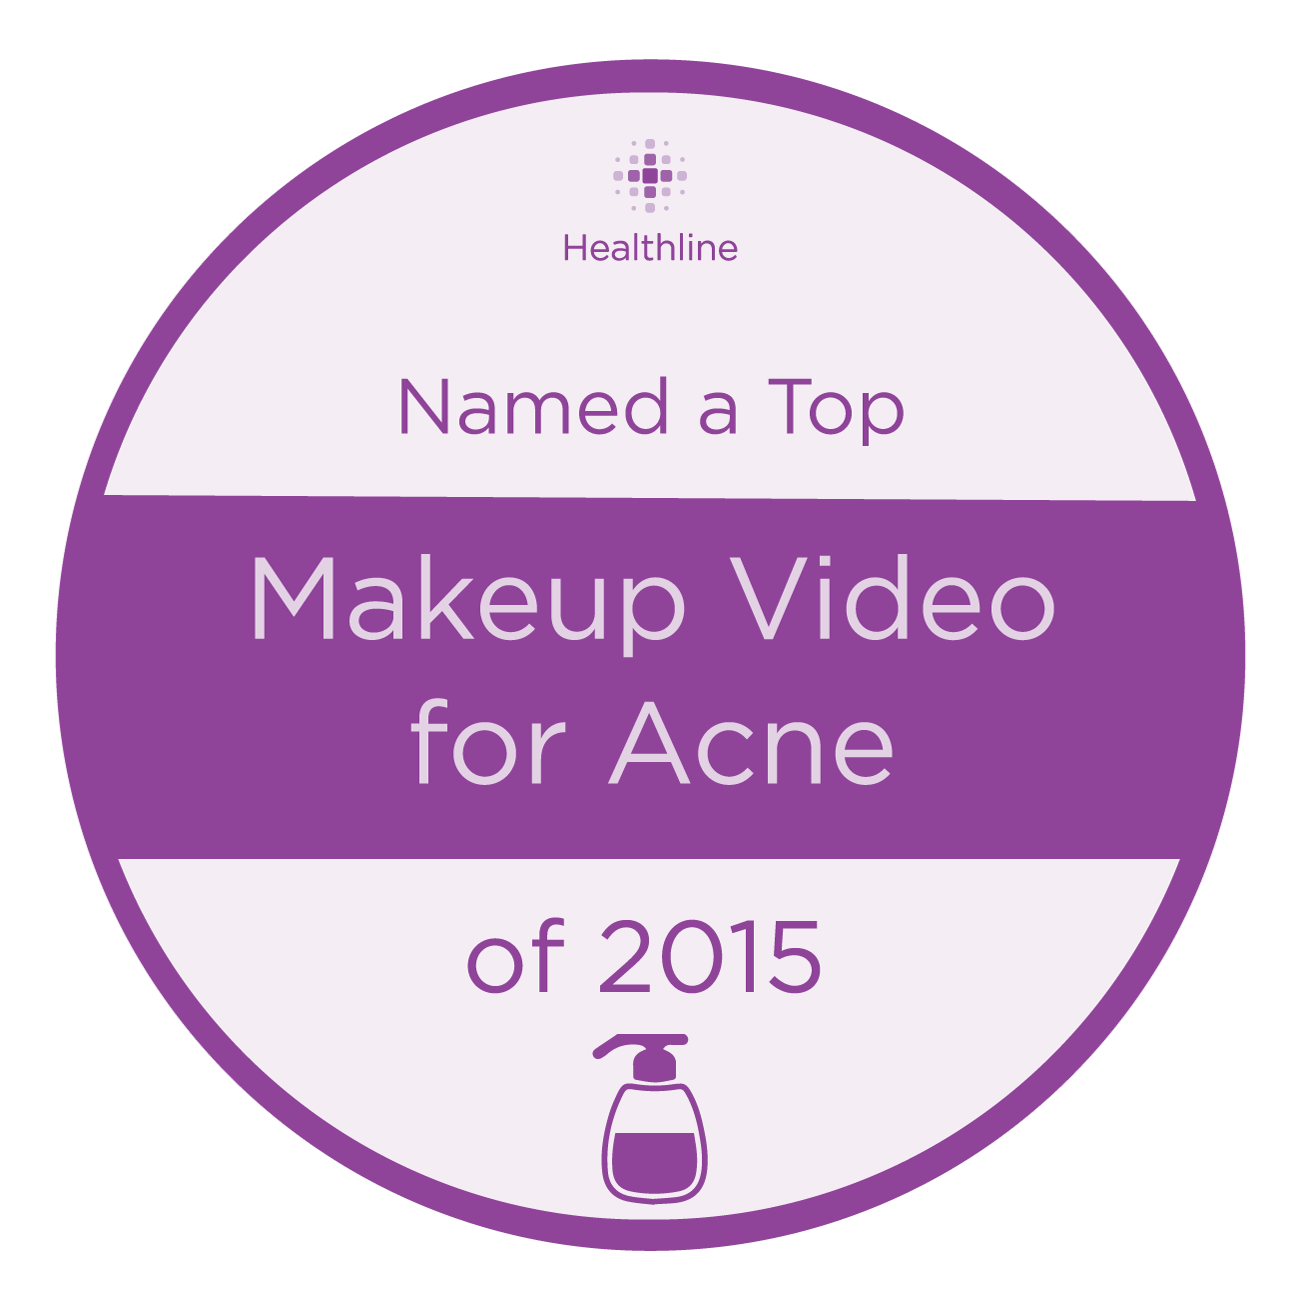 The Best Makeup Videos for Acne